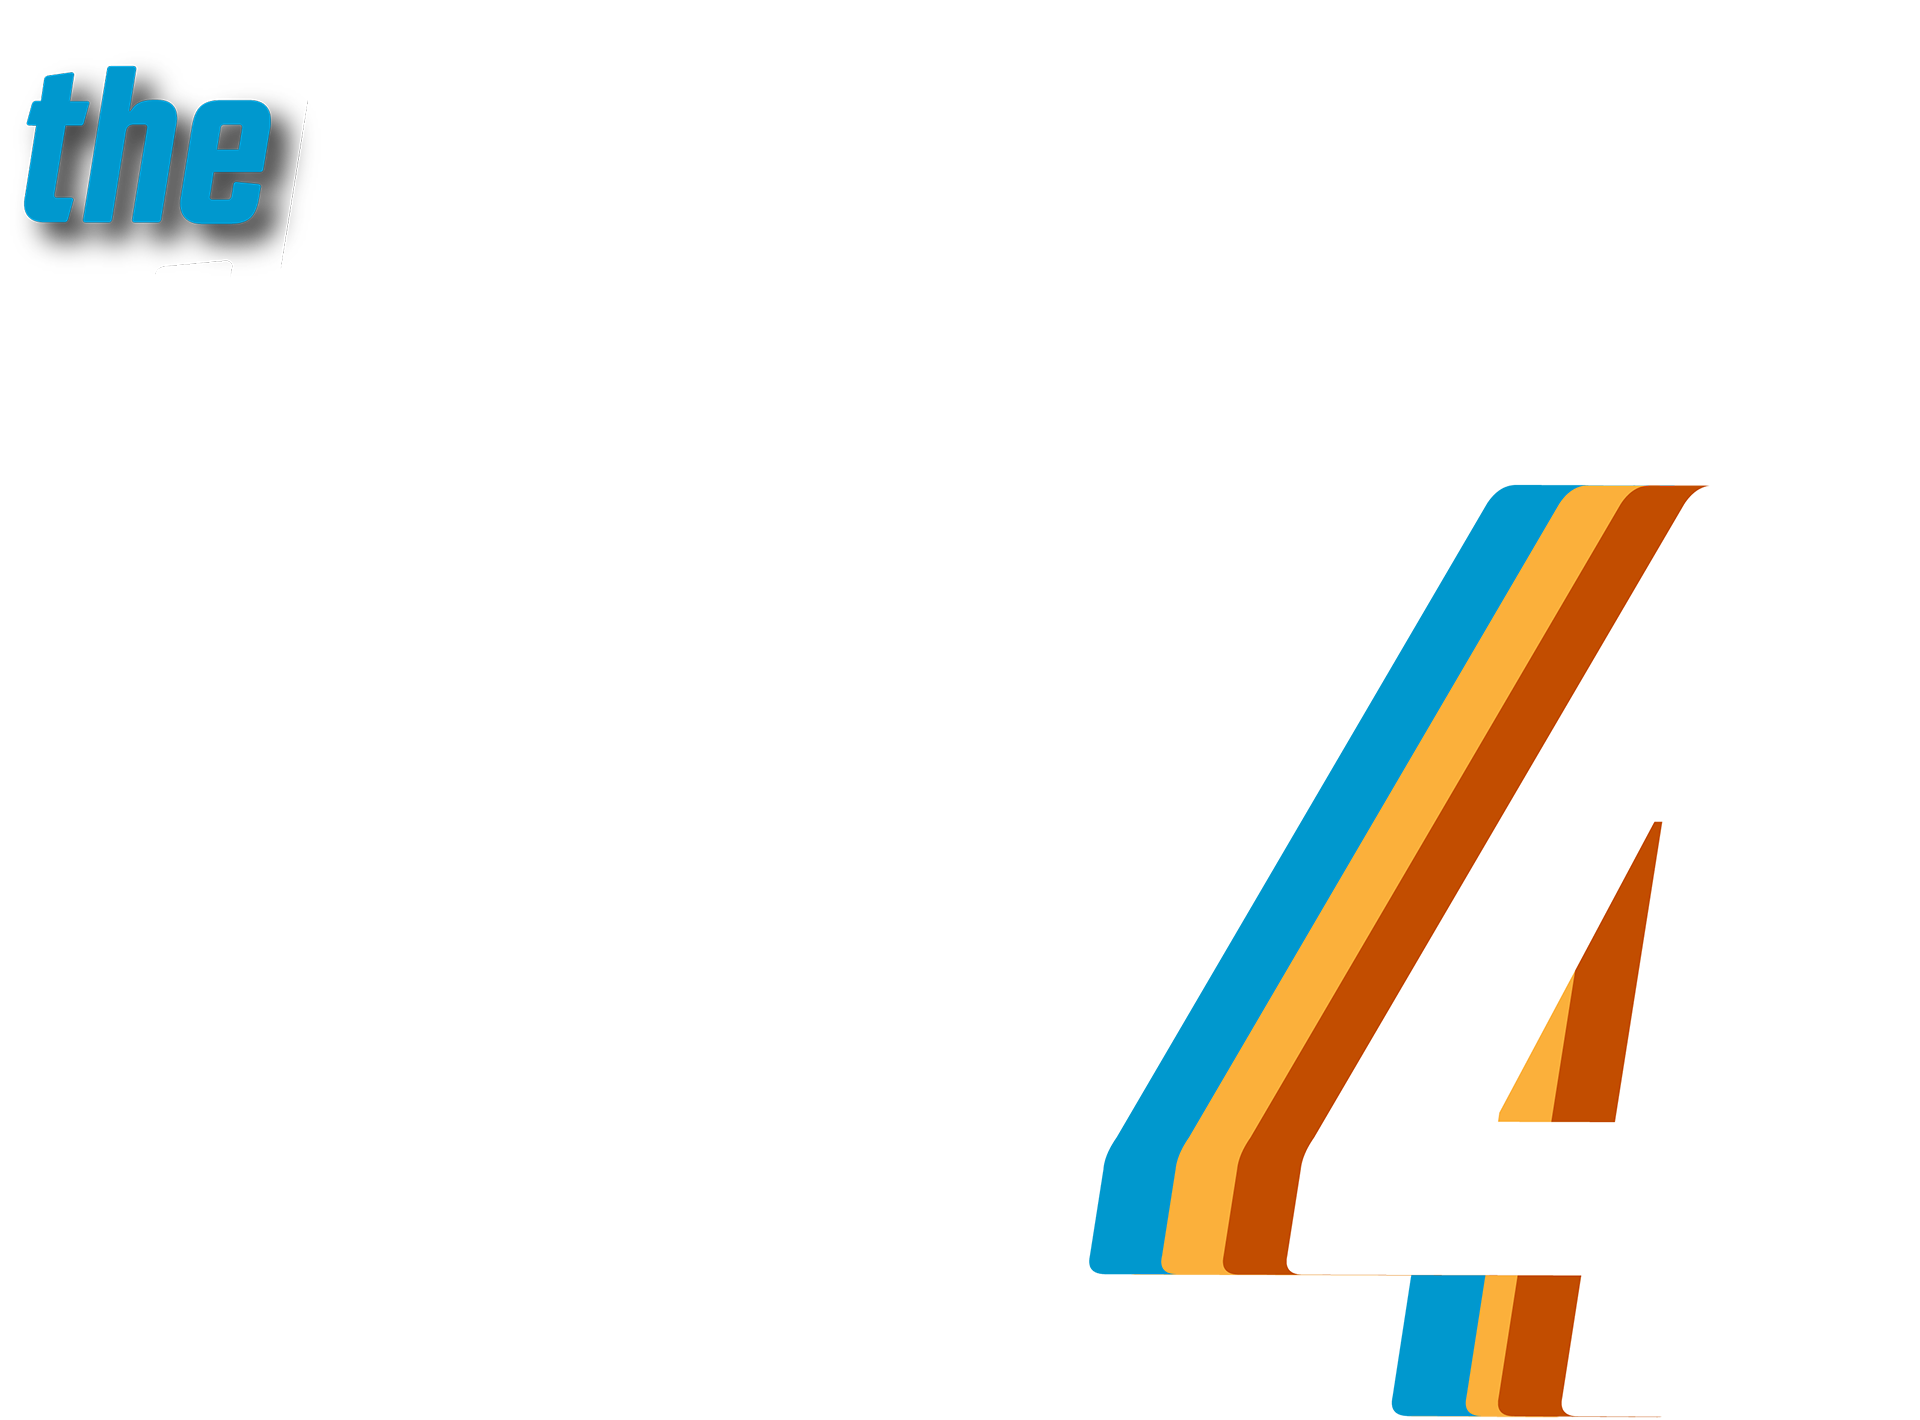 Jackbox Party Pack 4 - The Jackbox Party Pack 4